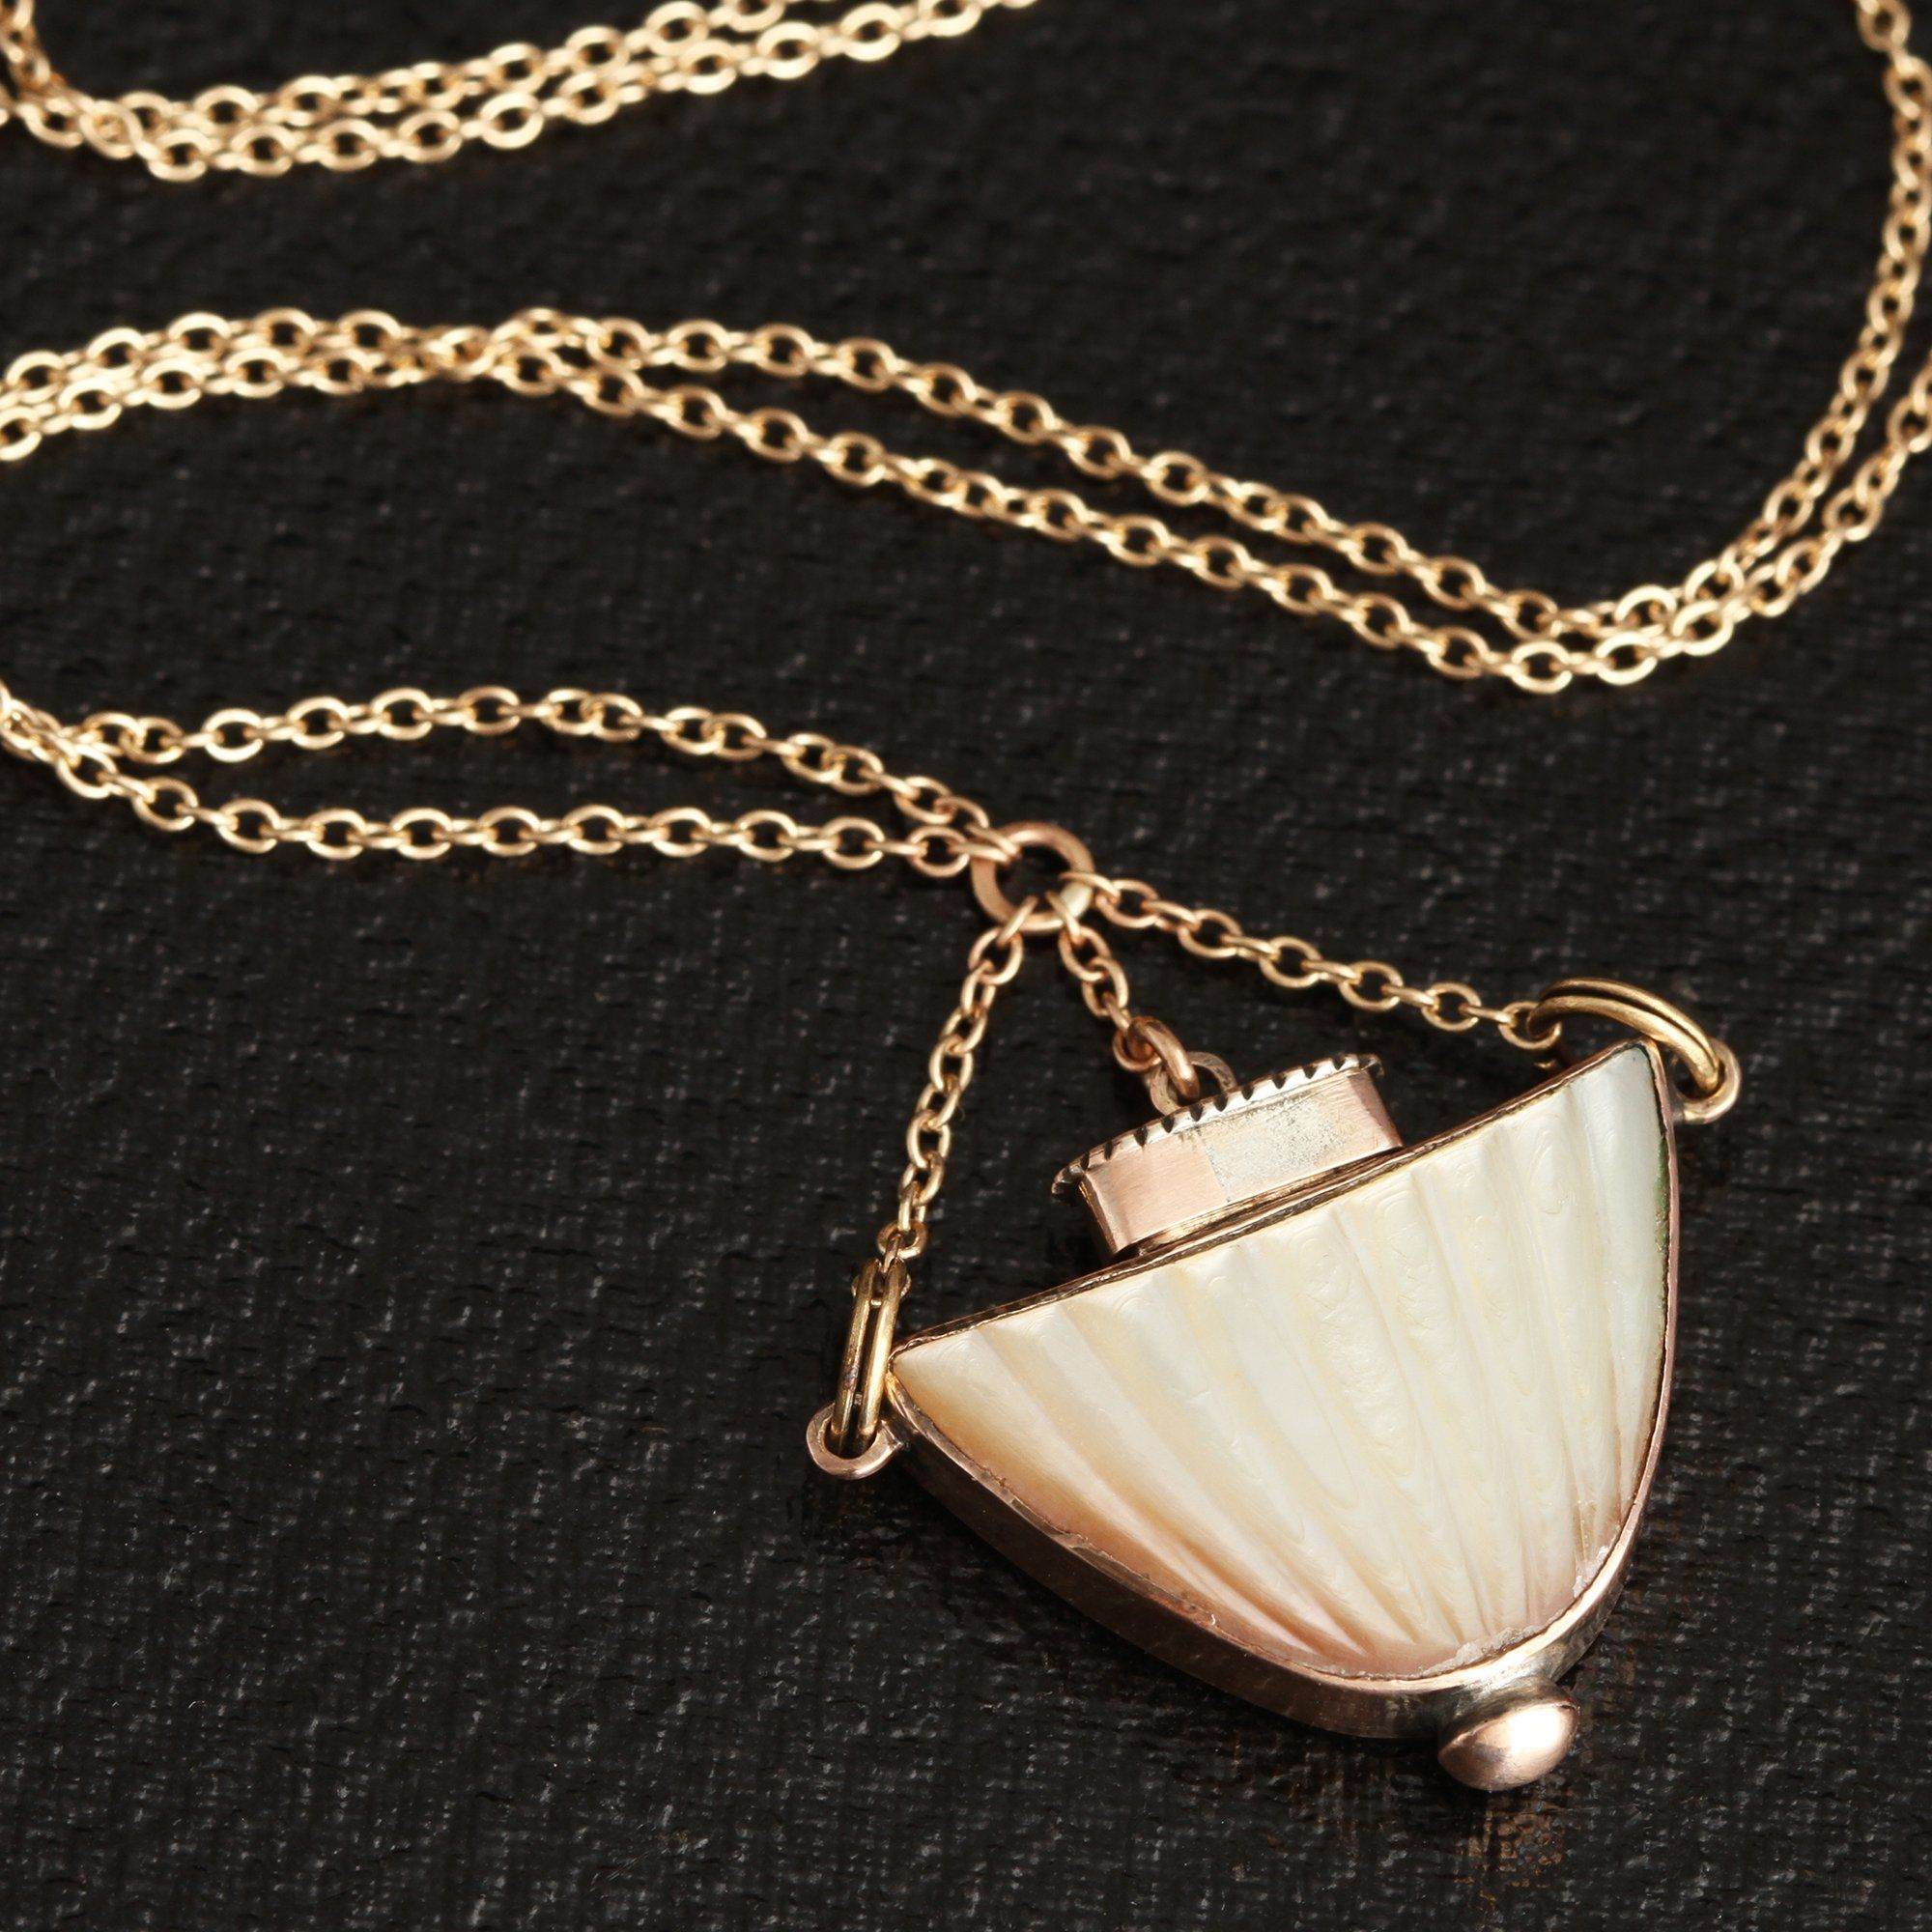 Detail of Georgian Mother of Pearl Urn Scent Bottle Necklace